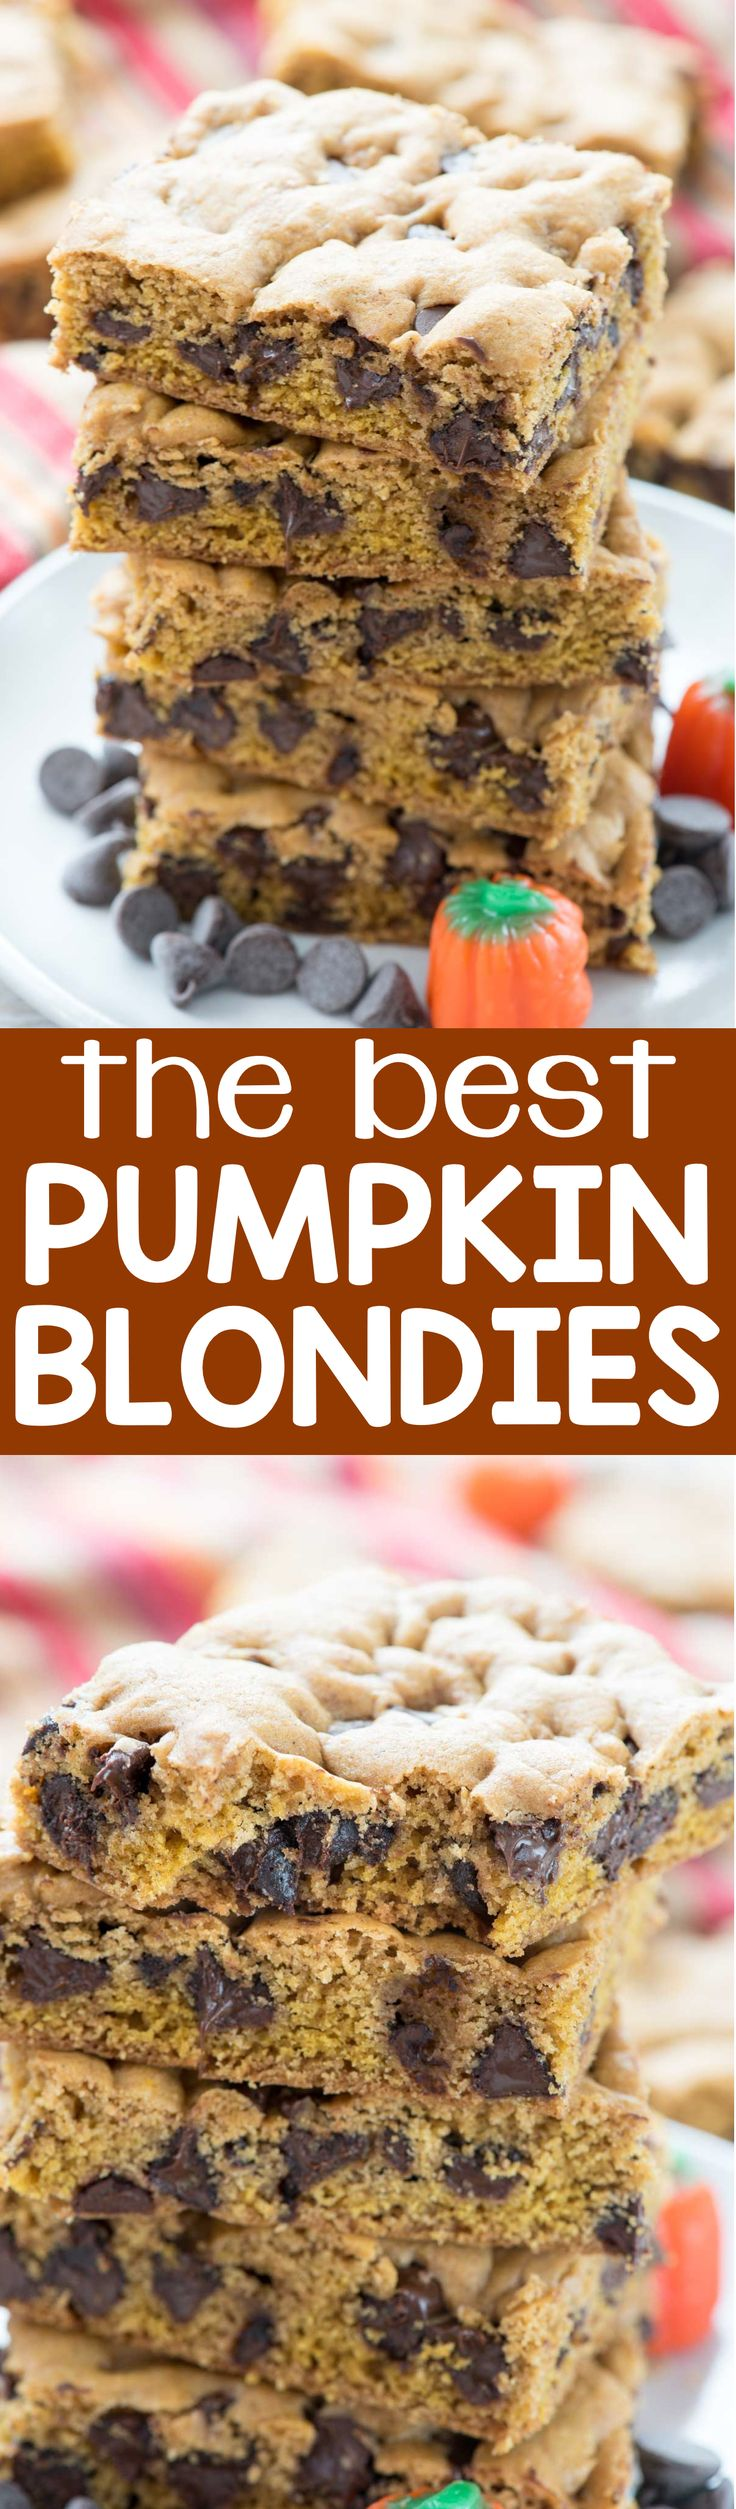 The BEST Pumpkin Blondie Recipe - an easy pumpkin cookie turned into a cookie bar and FULL of chocolate! These are fall heaven and perfect for a crowd or just because you want a blondie.